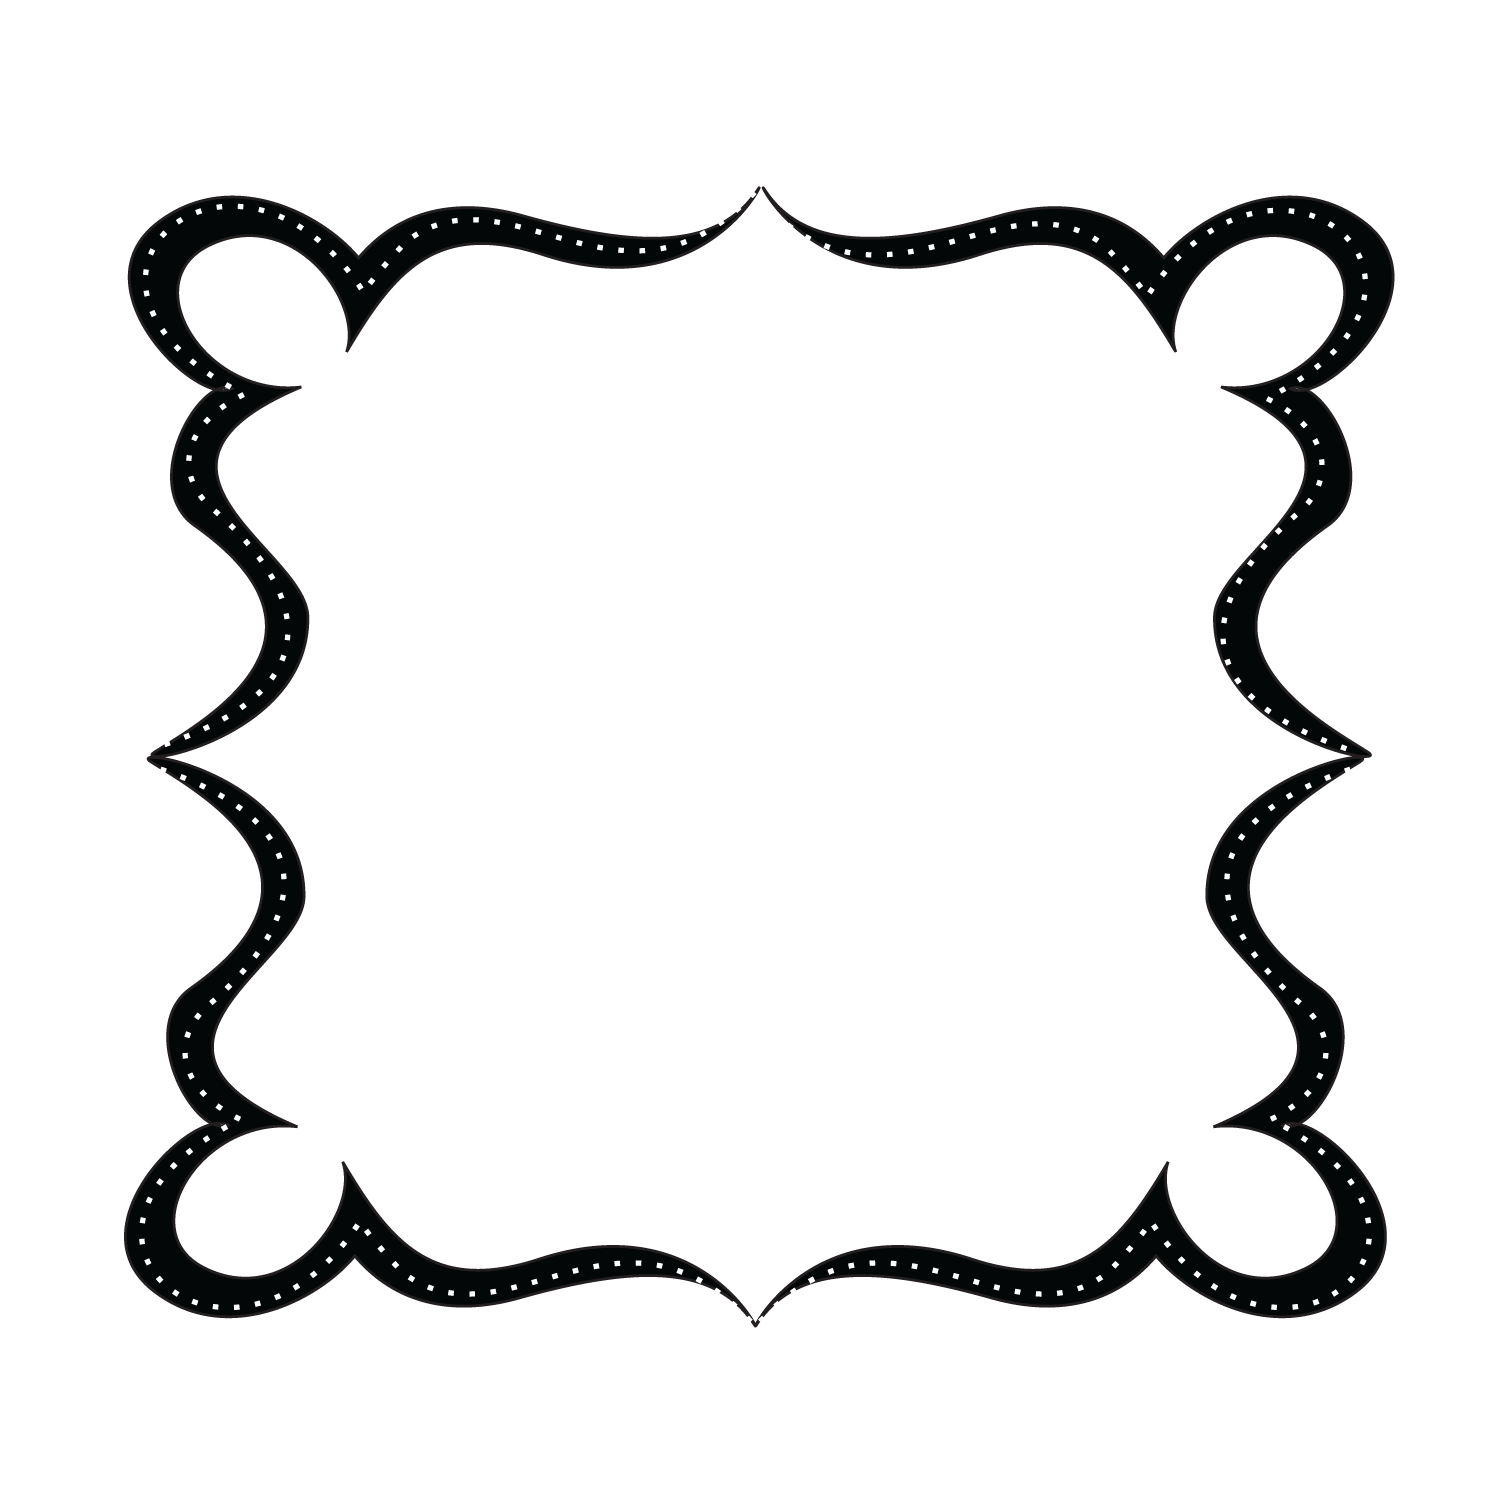 Infinity clipart black and white Frame background free Scroll Art